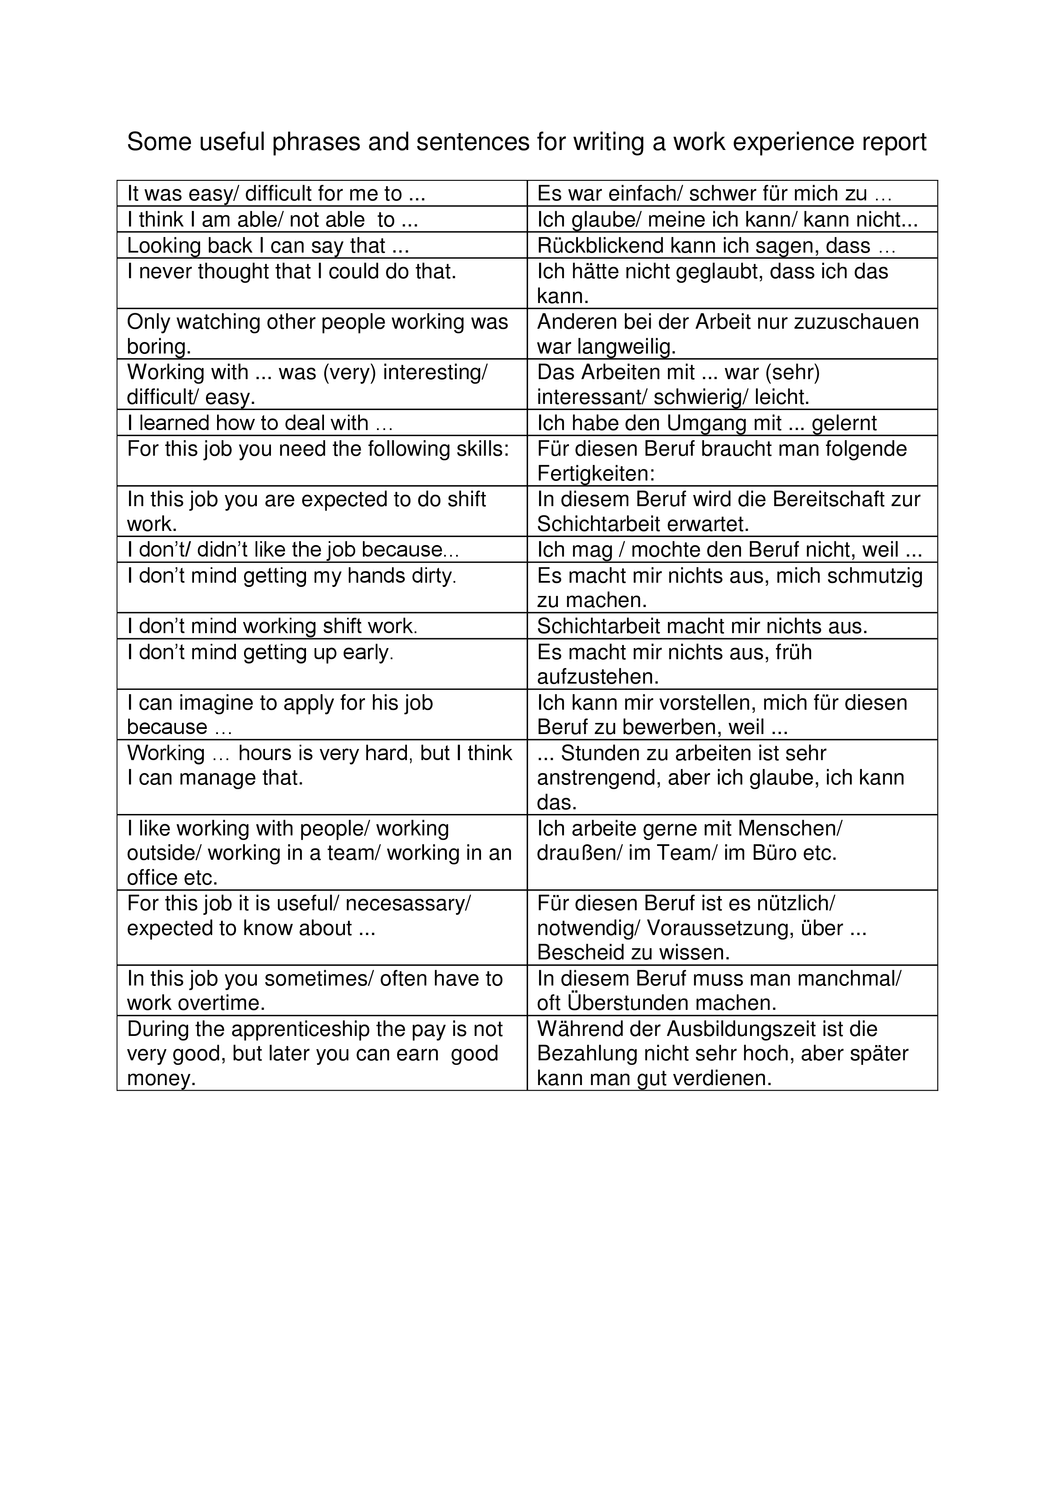 Useful Phrases For Writing A Work Experience Report Unterrichtsmaterial Im Fach Englisch In 2020 Englischunterricht Unterrichtsmaterial Vokabeln